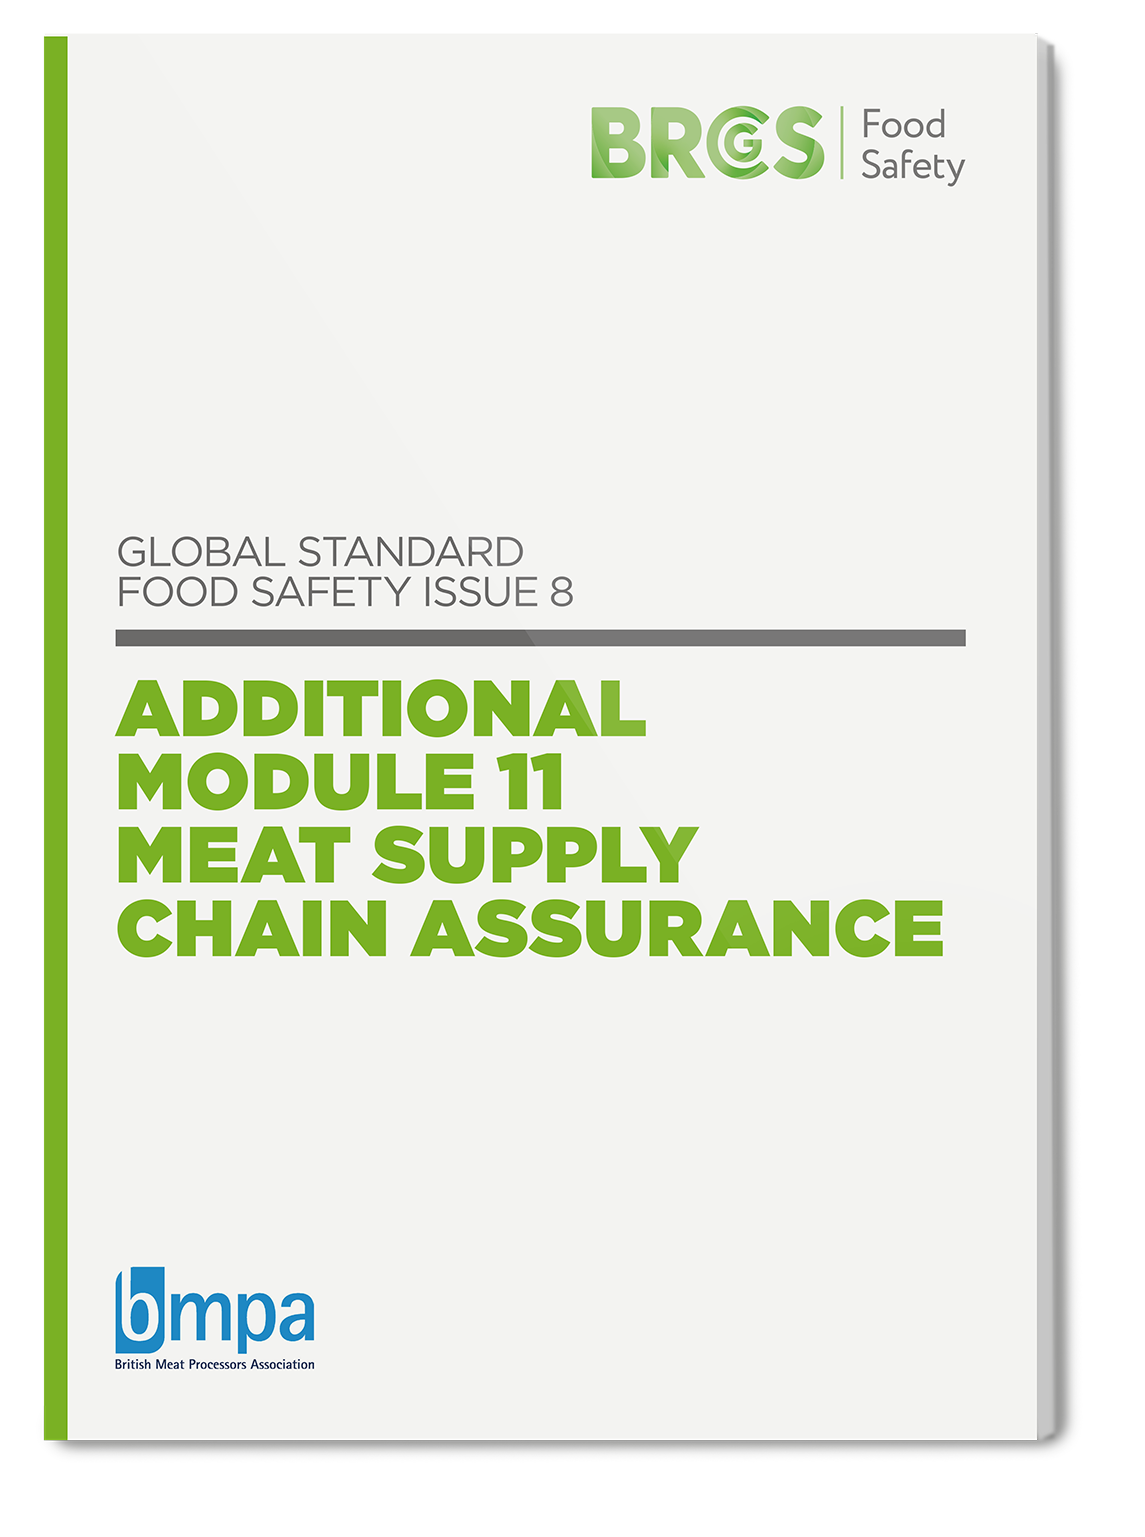 Global Standard for Food Safety Issue 8 Additional Module 11 Meat Supply Chain Assurance